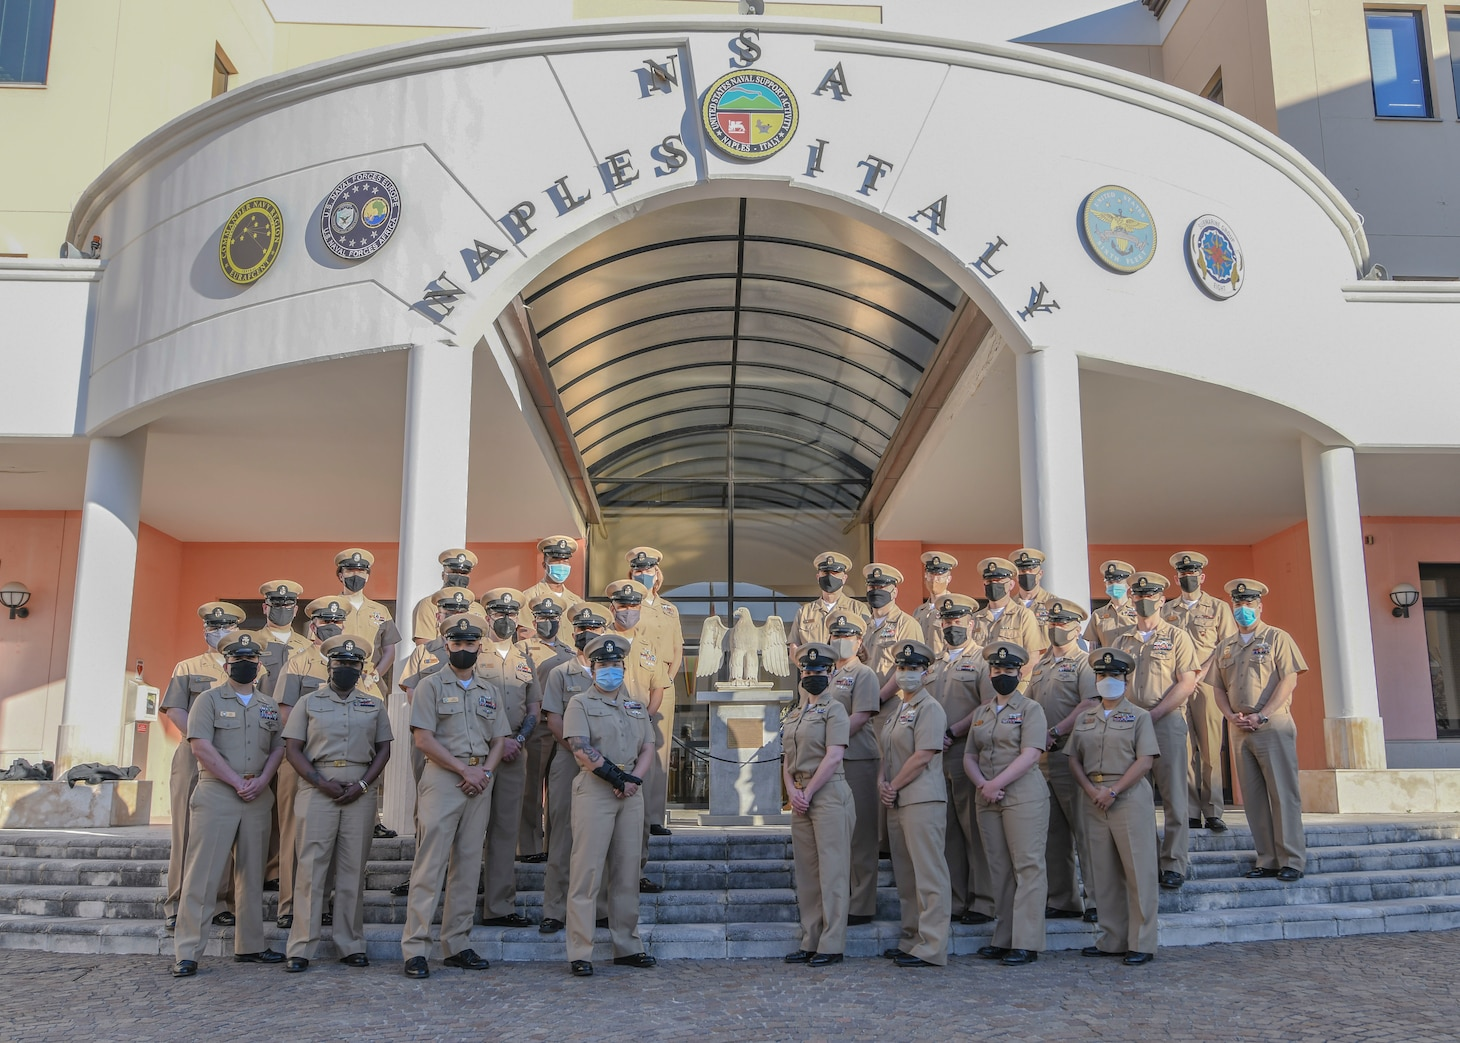 Chief Petty Officers pose for a photo on Naval Support Activity, Naples, Mar. 31, 2021, during a celebration of the 128th birthday of the Chief Petty Officer ranks.